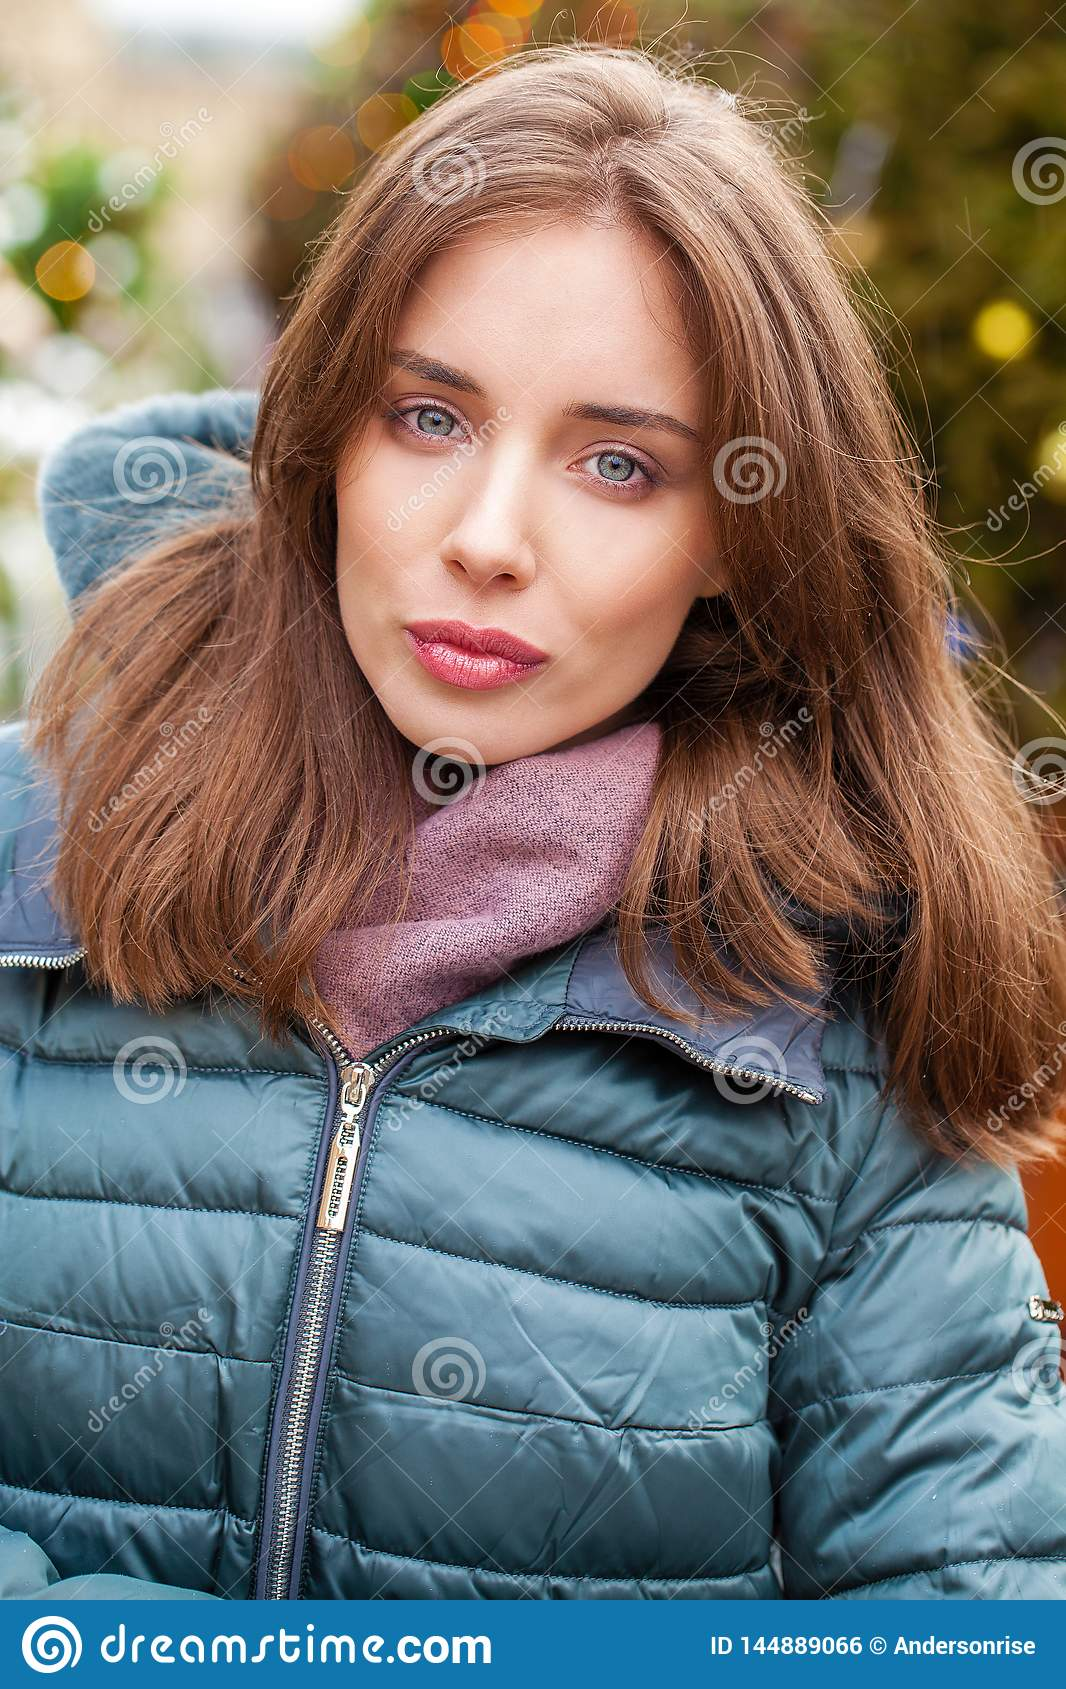 Closeup portrait of a young woman in the winter down jacket